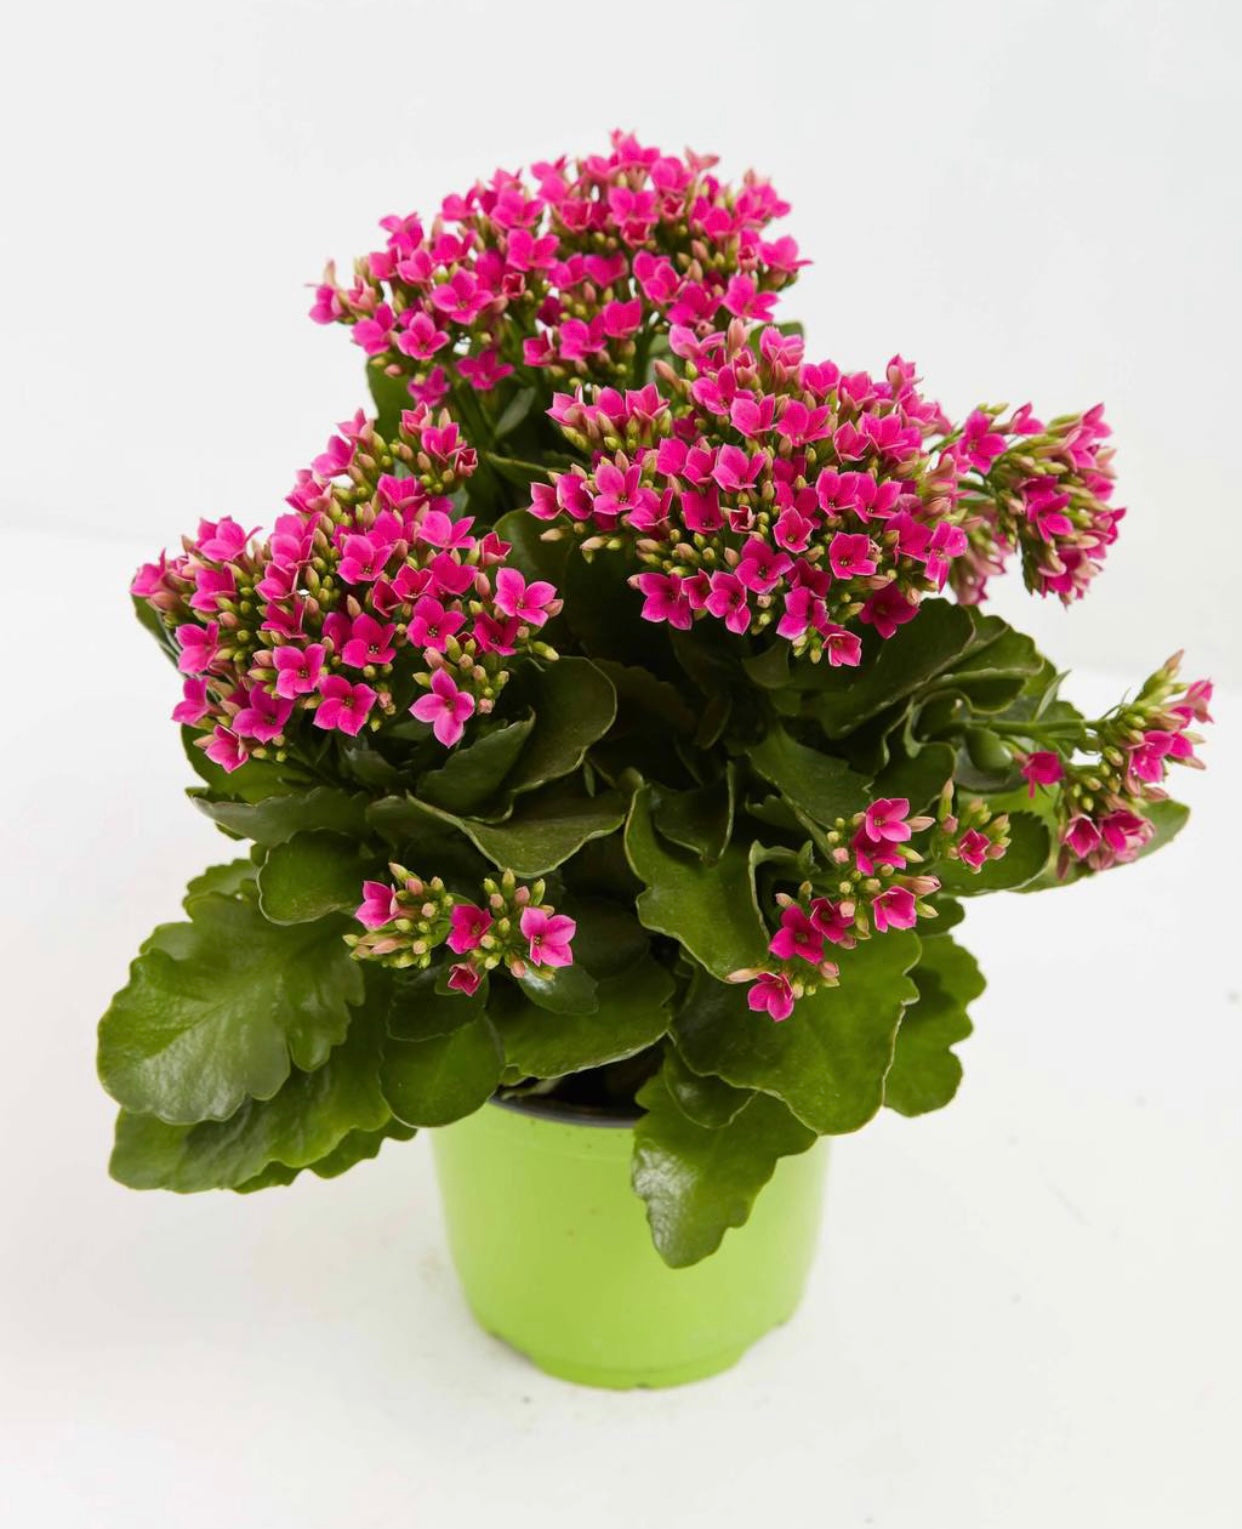 https://www.livelyroot.com/collections/mothers-day-buy-1-get-1-1-2-off/products/kalanchoe?variant=39298816016466